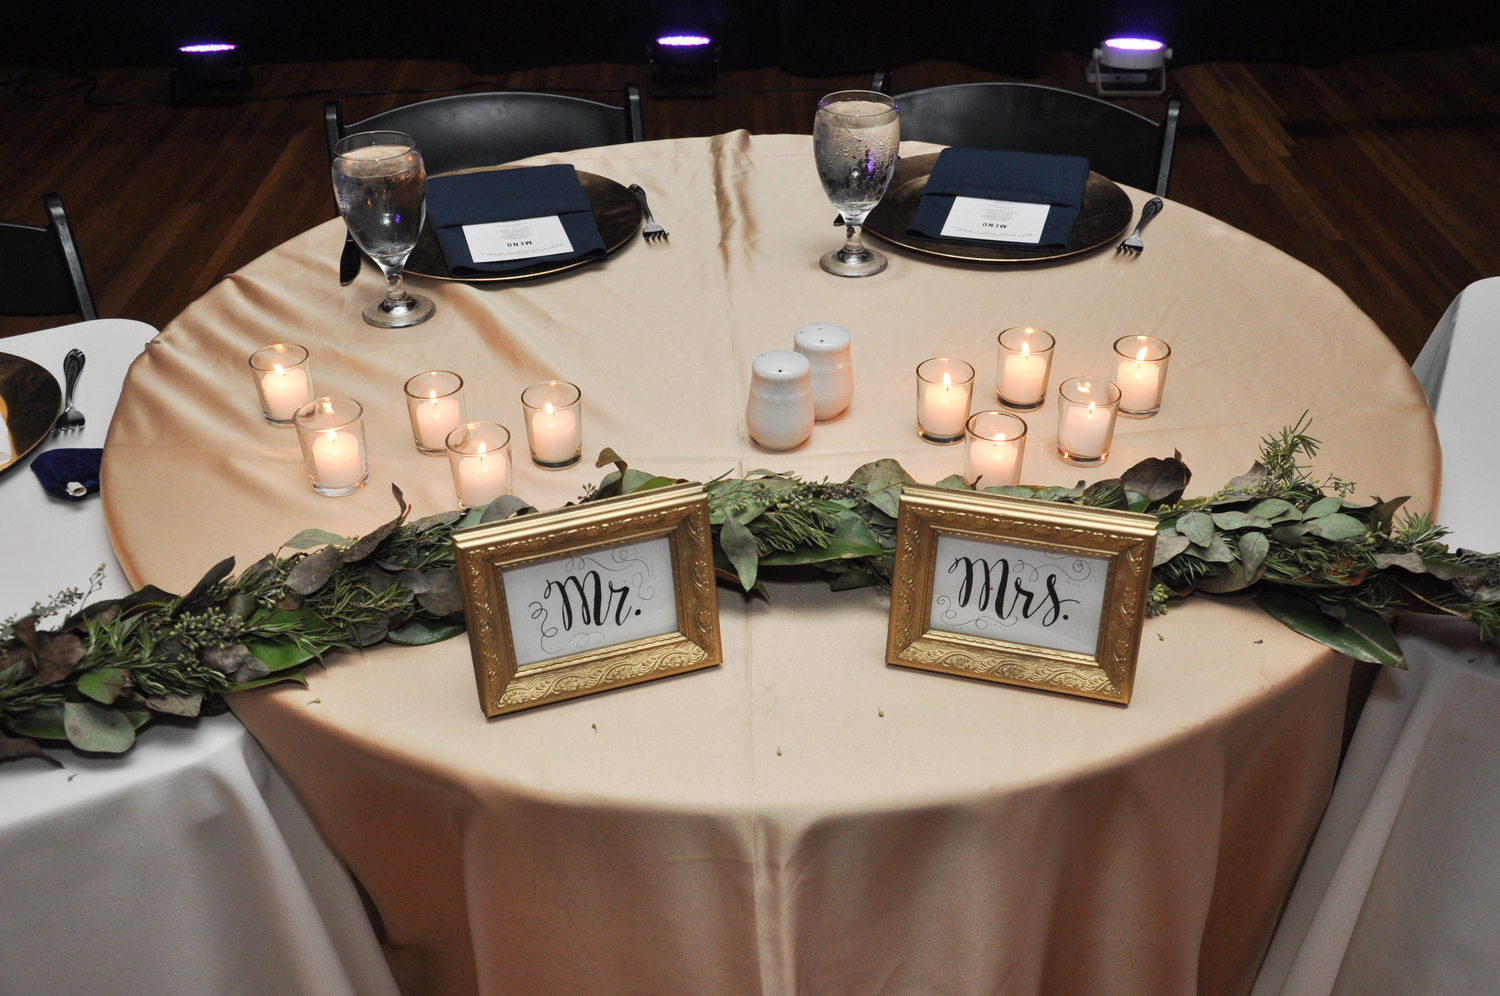 Mr. and Mrs. signs on the sweetheart table.